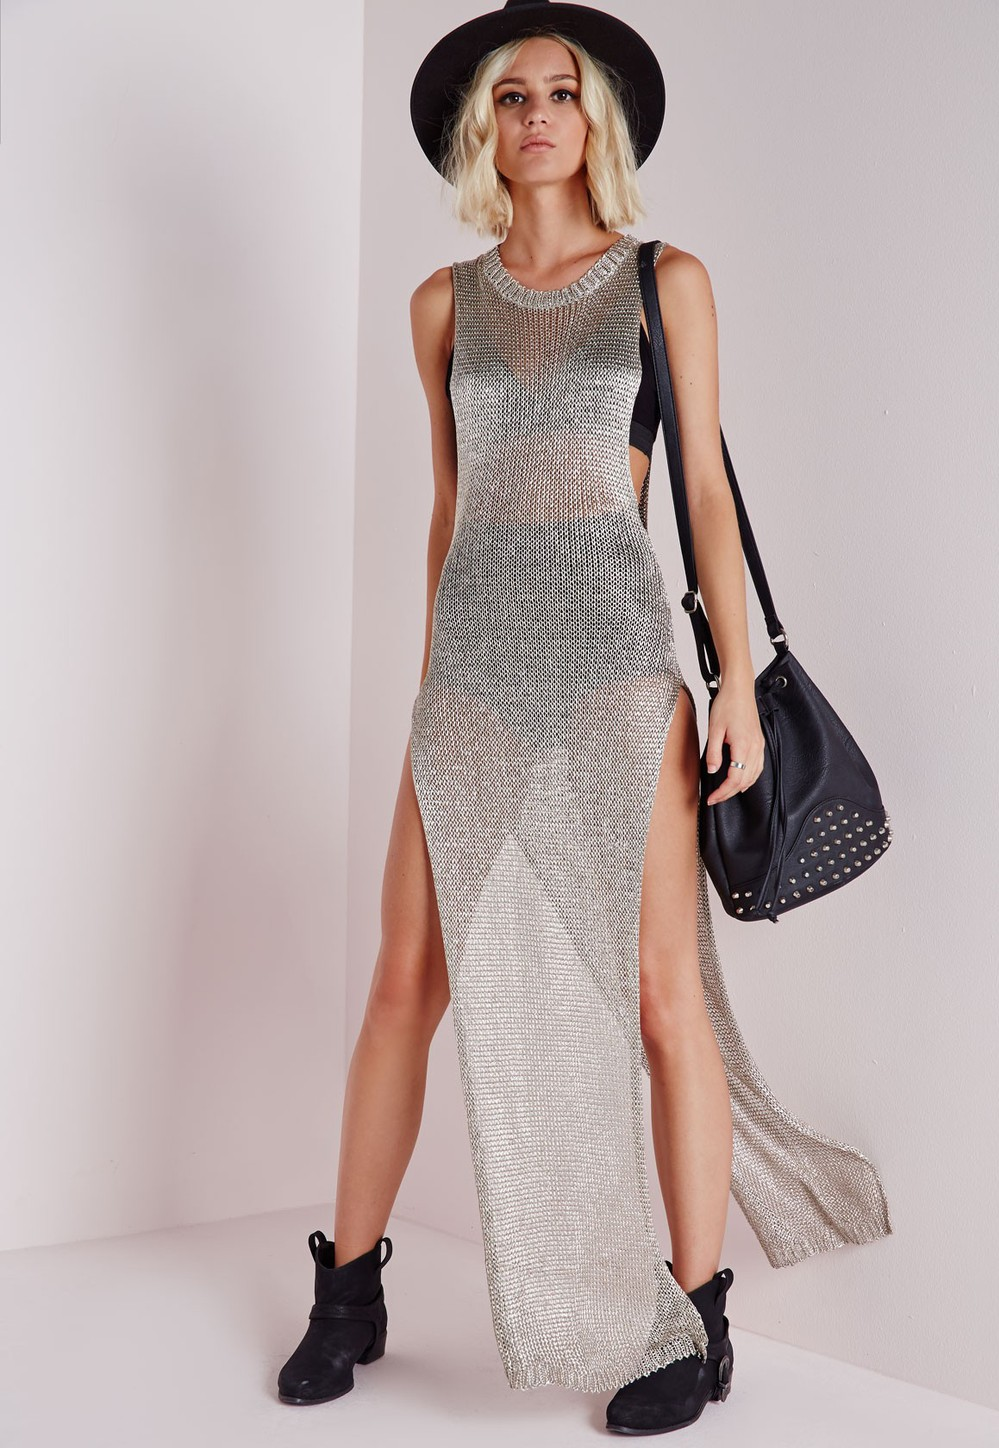 6f57f89d61c6 100%polyester metallic knitted maxi dress silver color long side split high  cut sex maxi